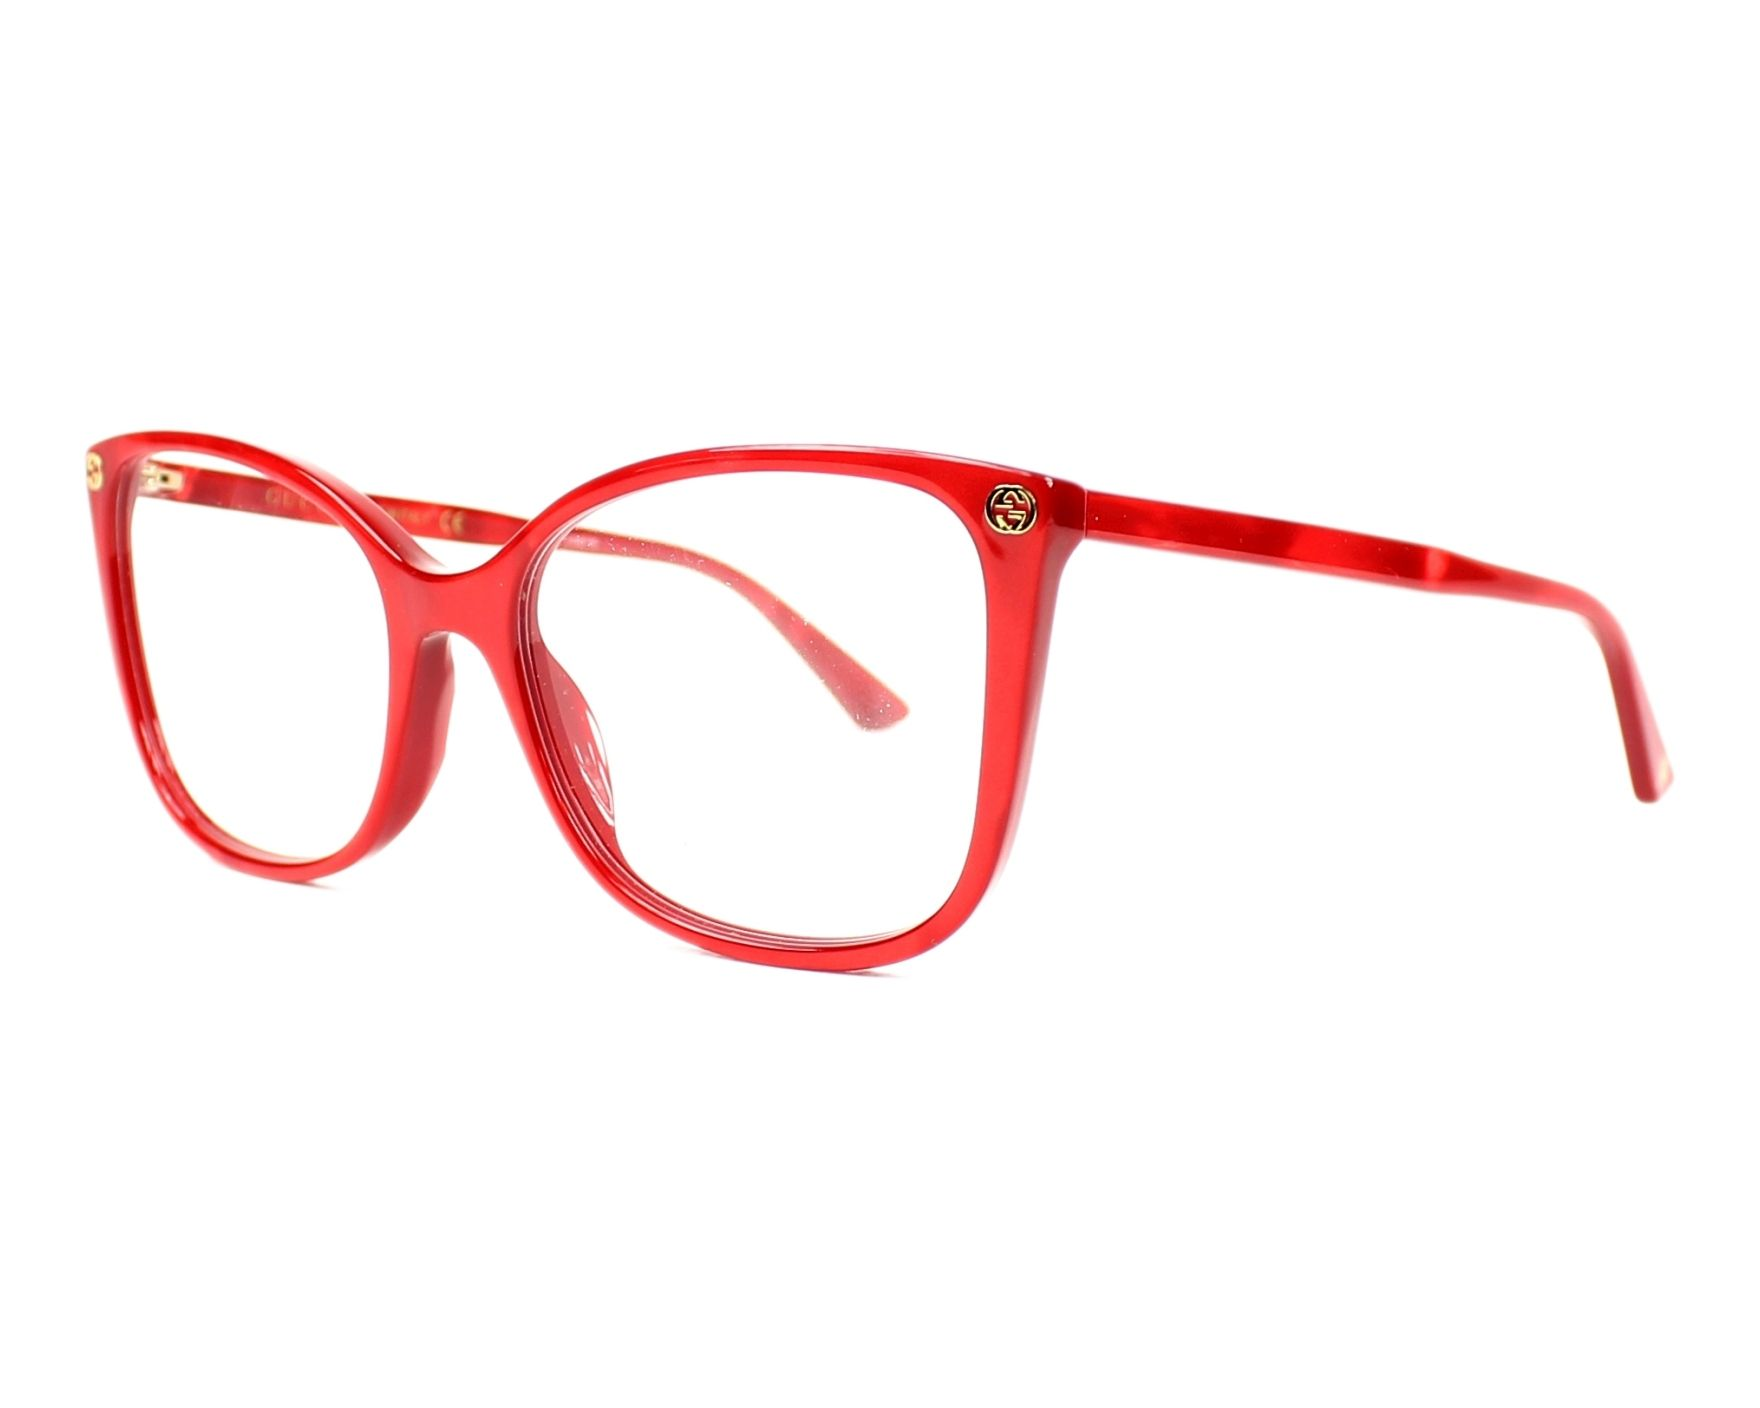 cf3b0fc63ee eyeglasses Gucci GG-0026-O 004 53-17 Red profile view